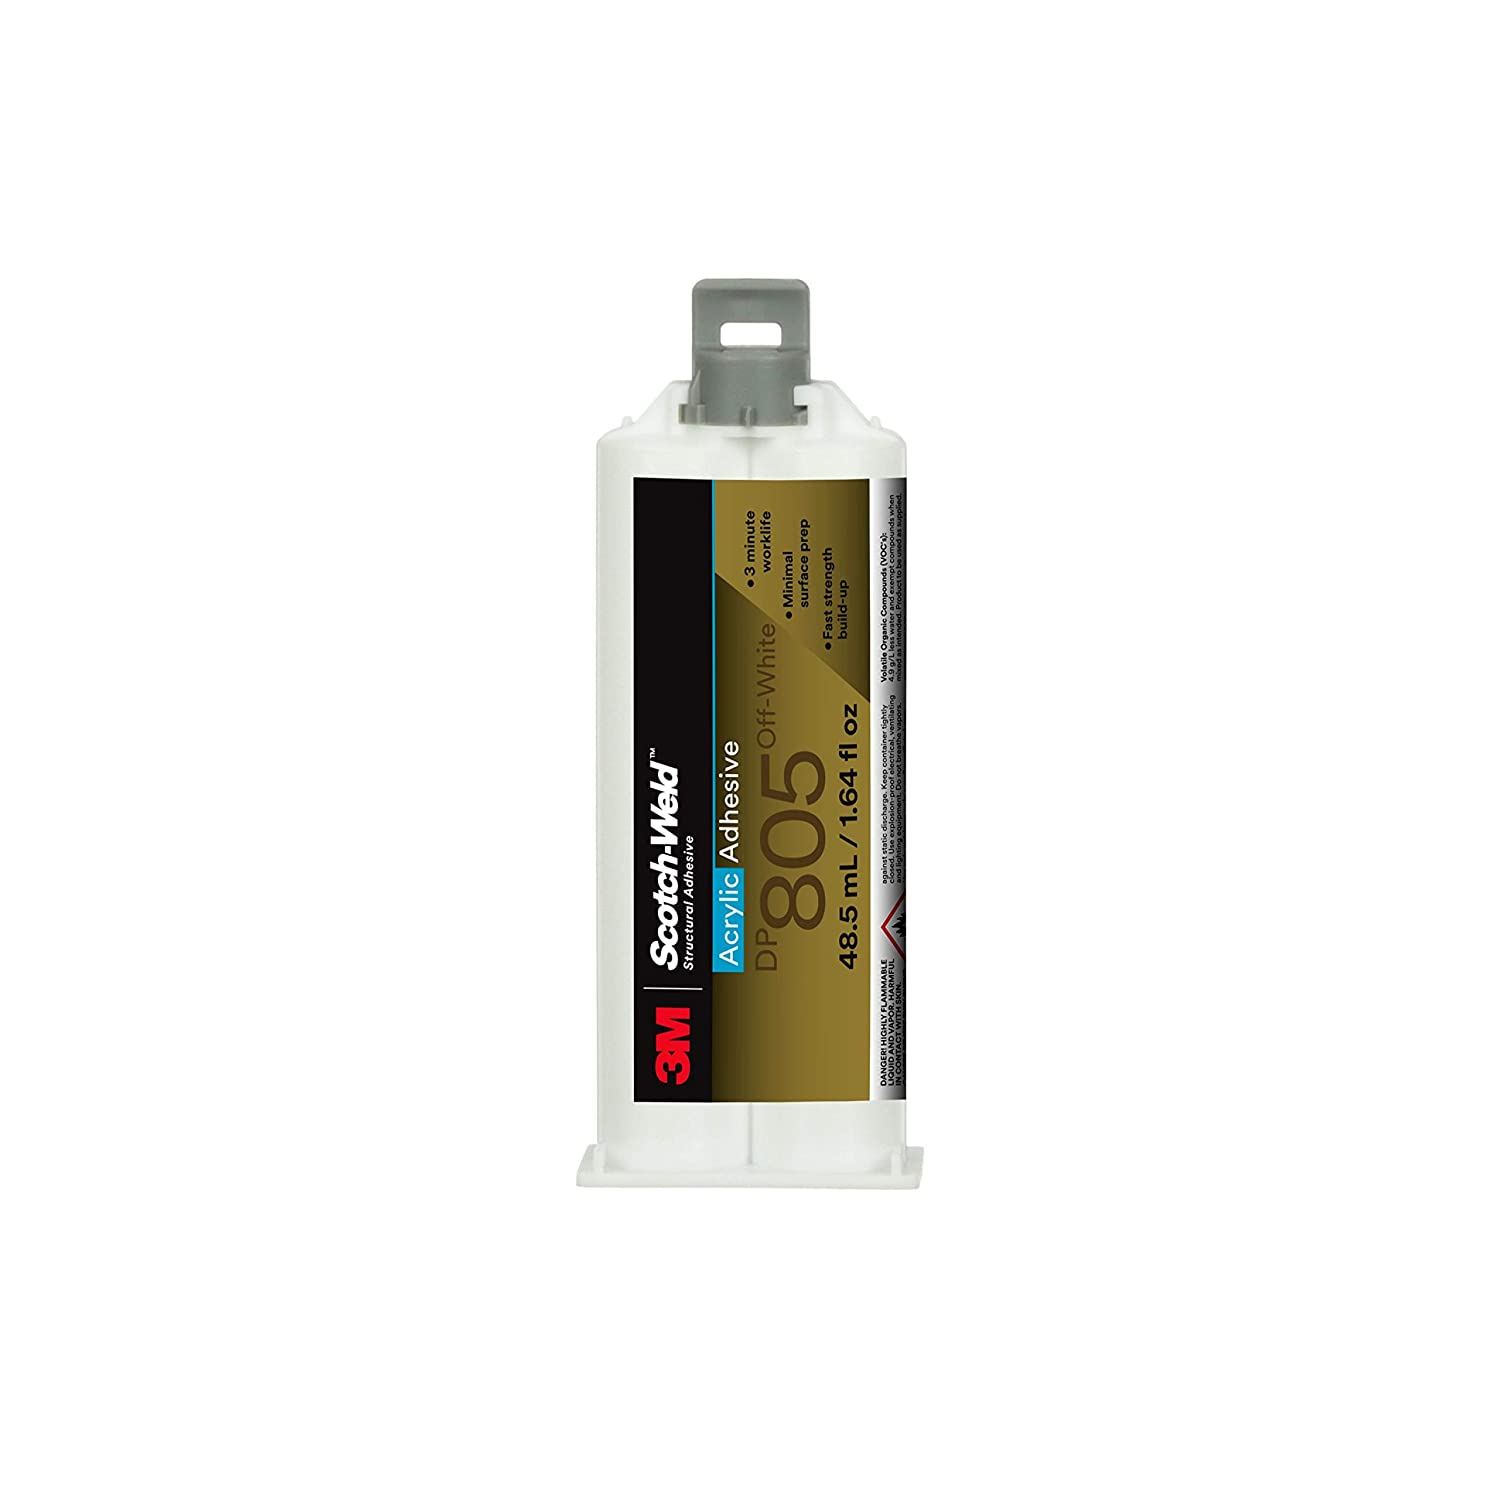 3M Scotch-Weld 08982 Acrylic Adhesive DP805 Off-47 mL, 12 per case, DP805, White